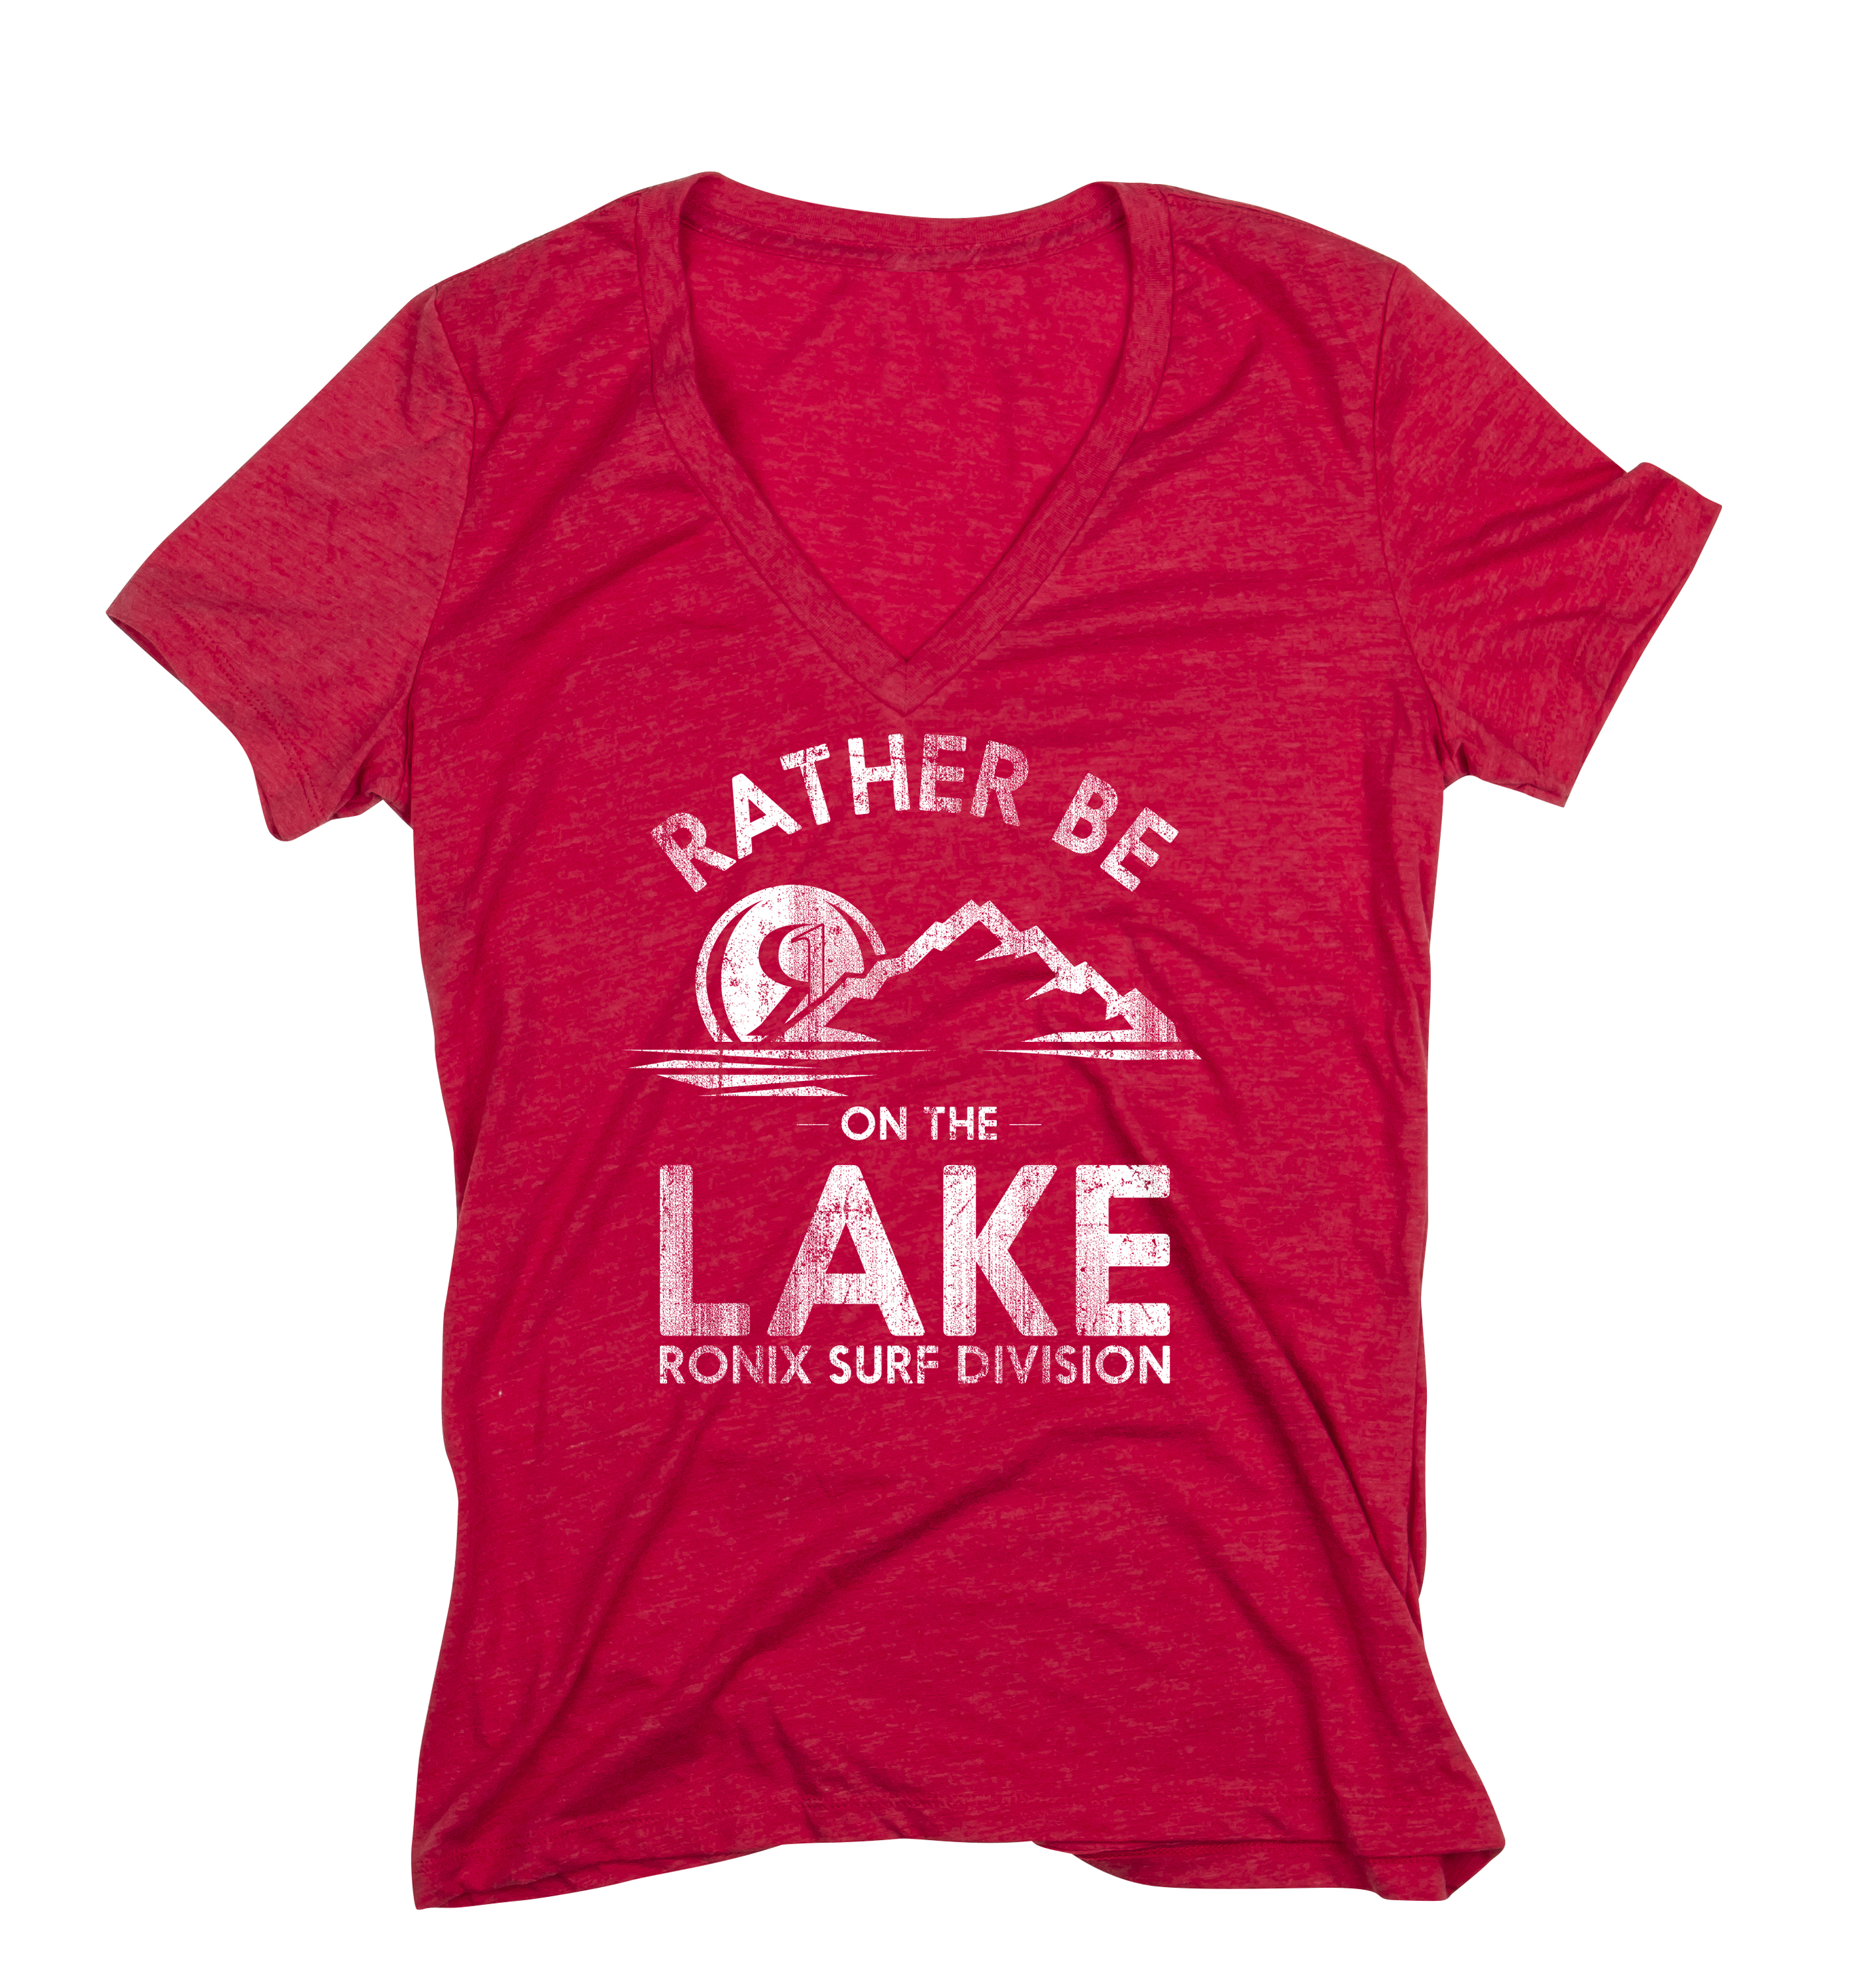 WOMEN'S ON THE LAKE T-SHIRT RONIX 2017